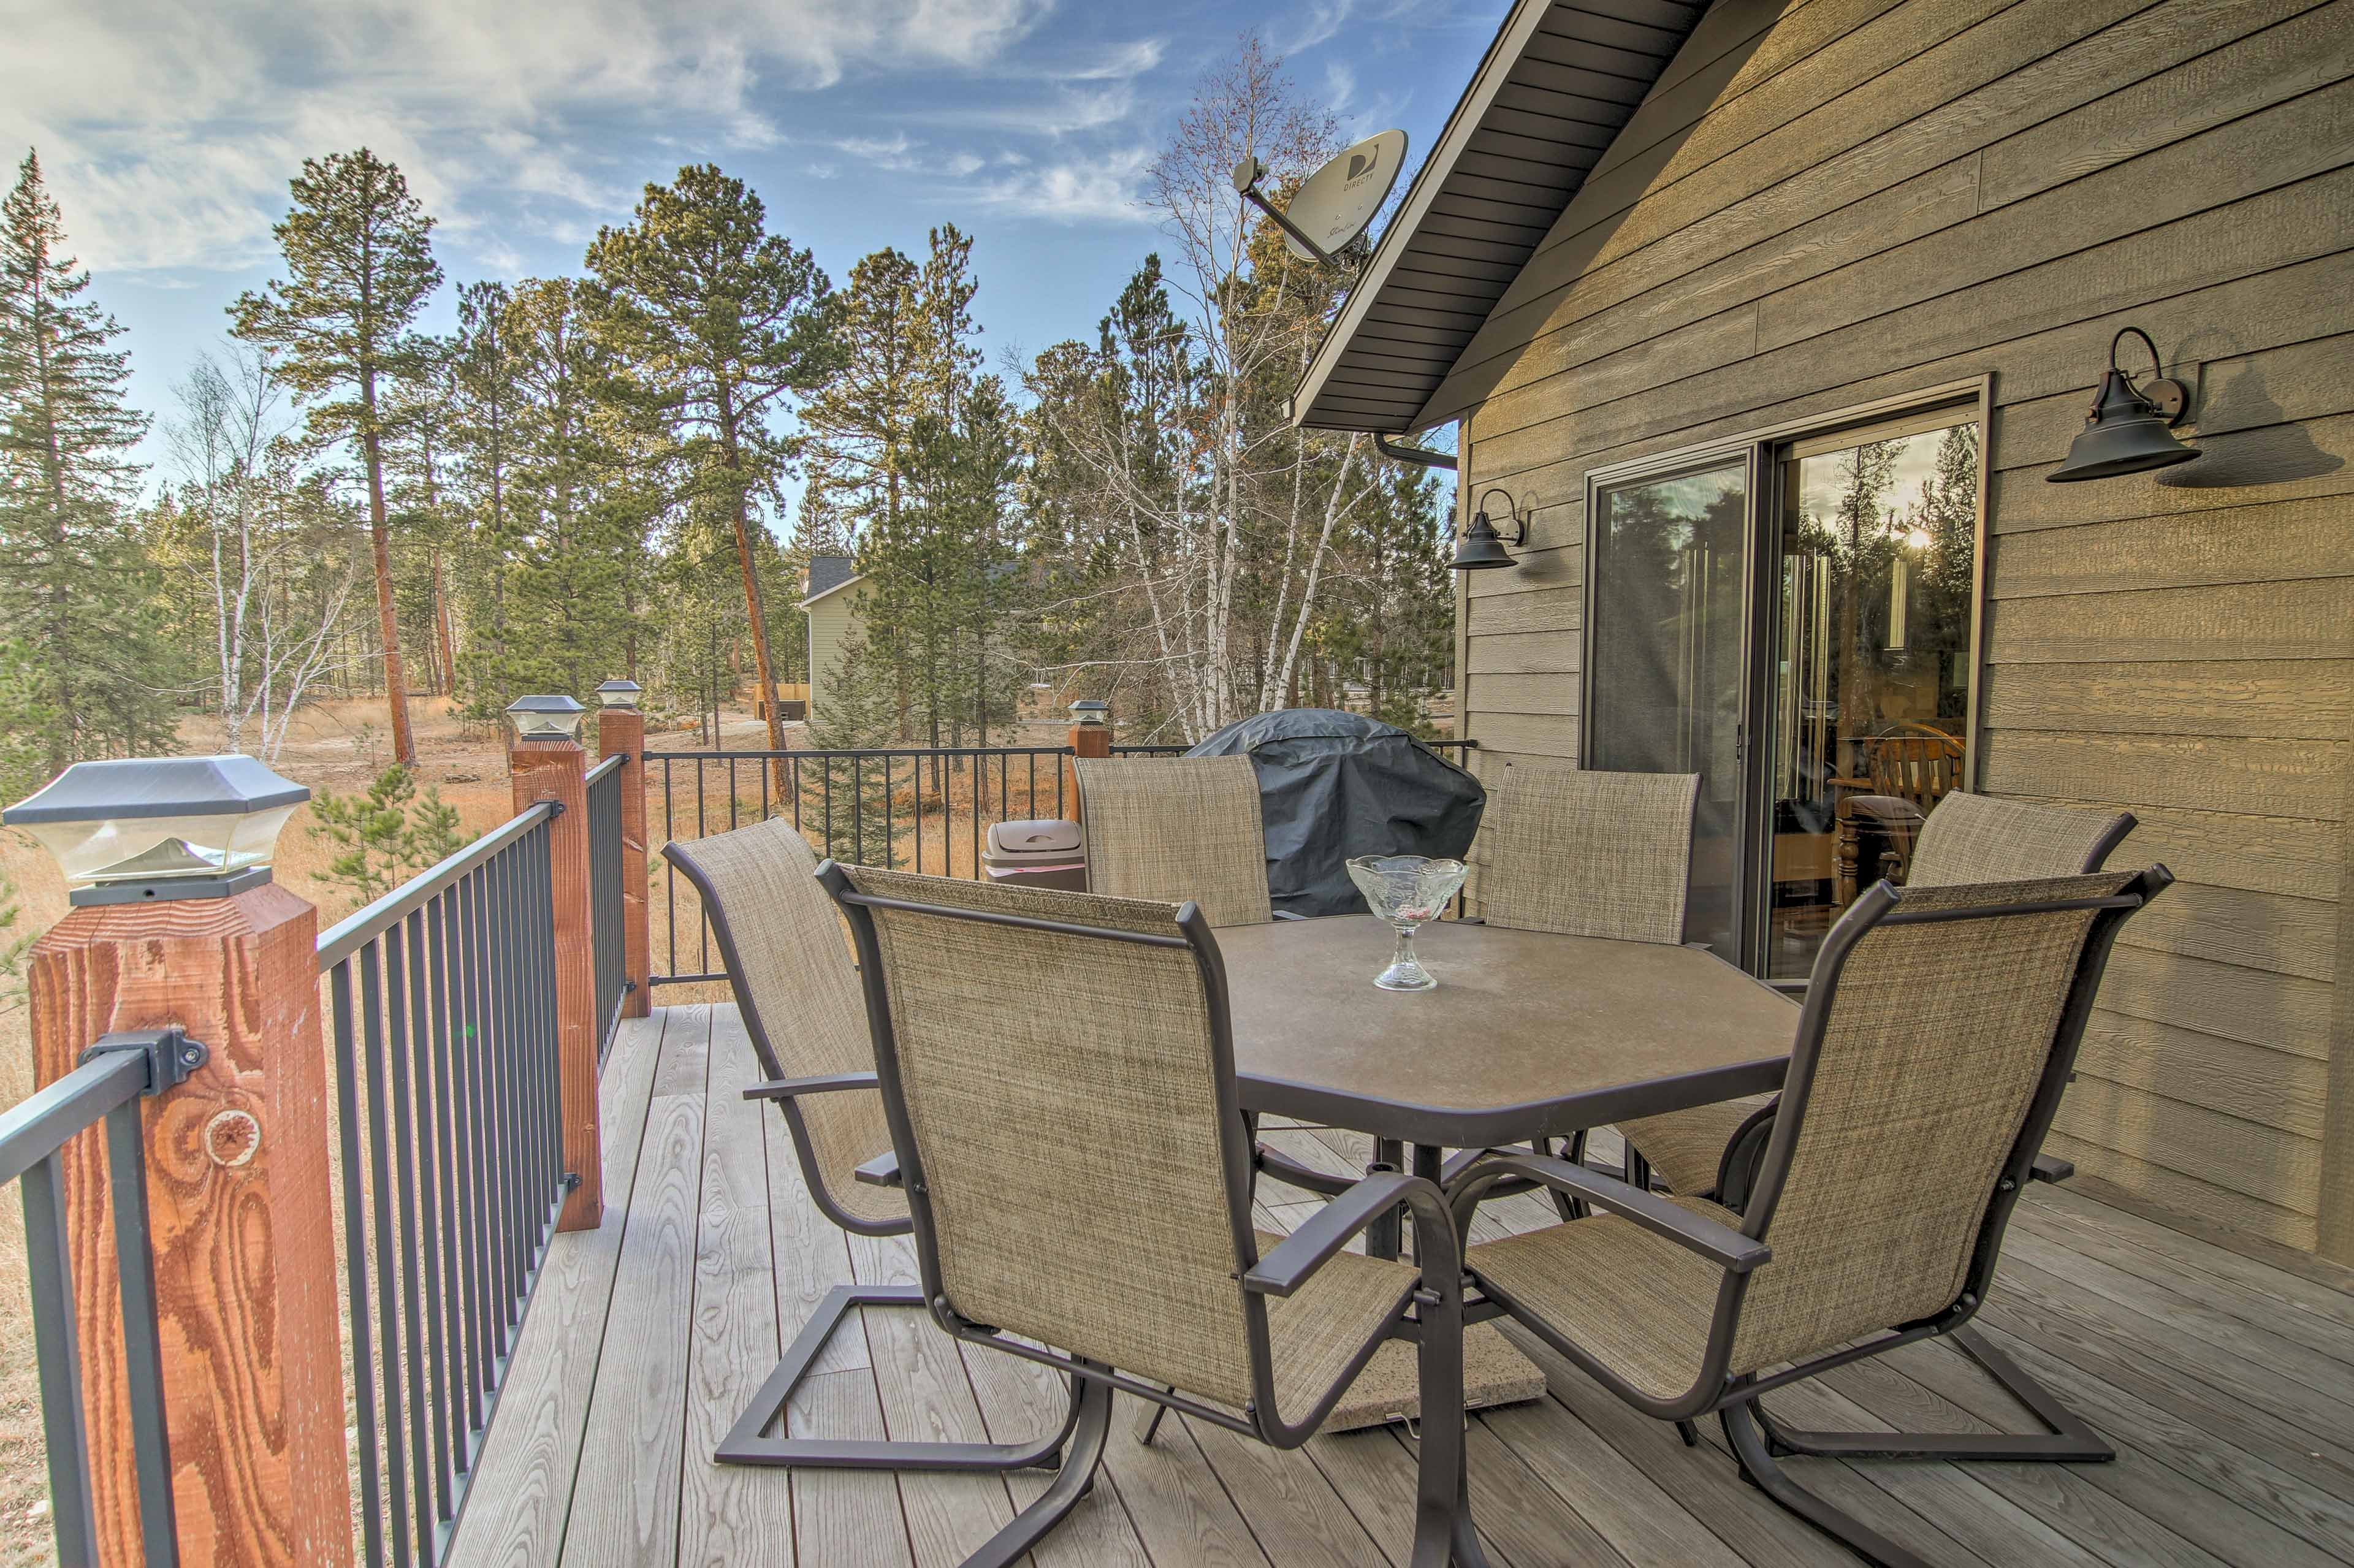 Fire up the gas grill for an at-home picnic on the second-floor deck.